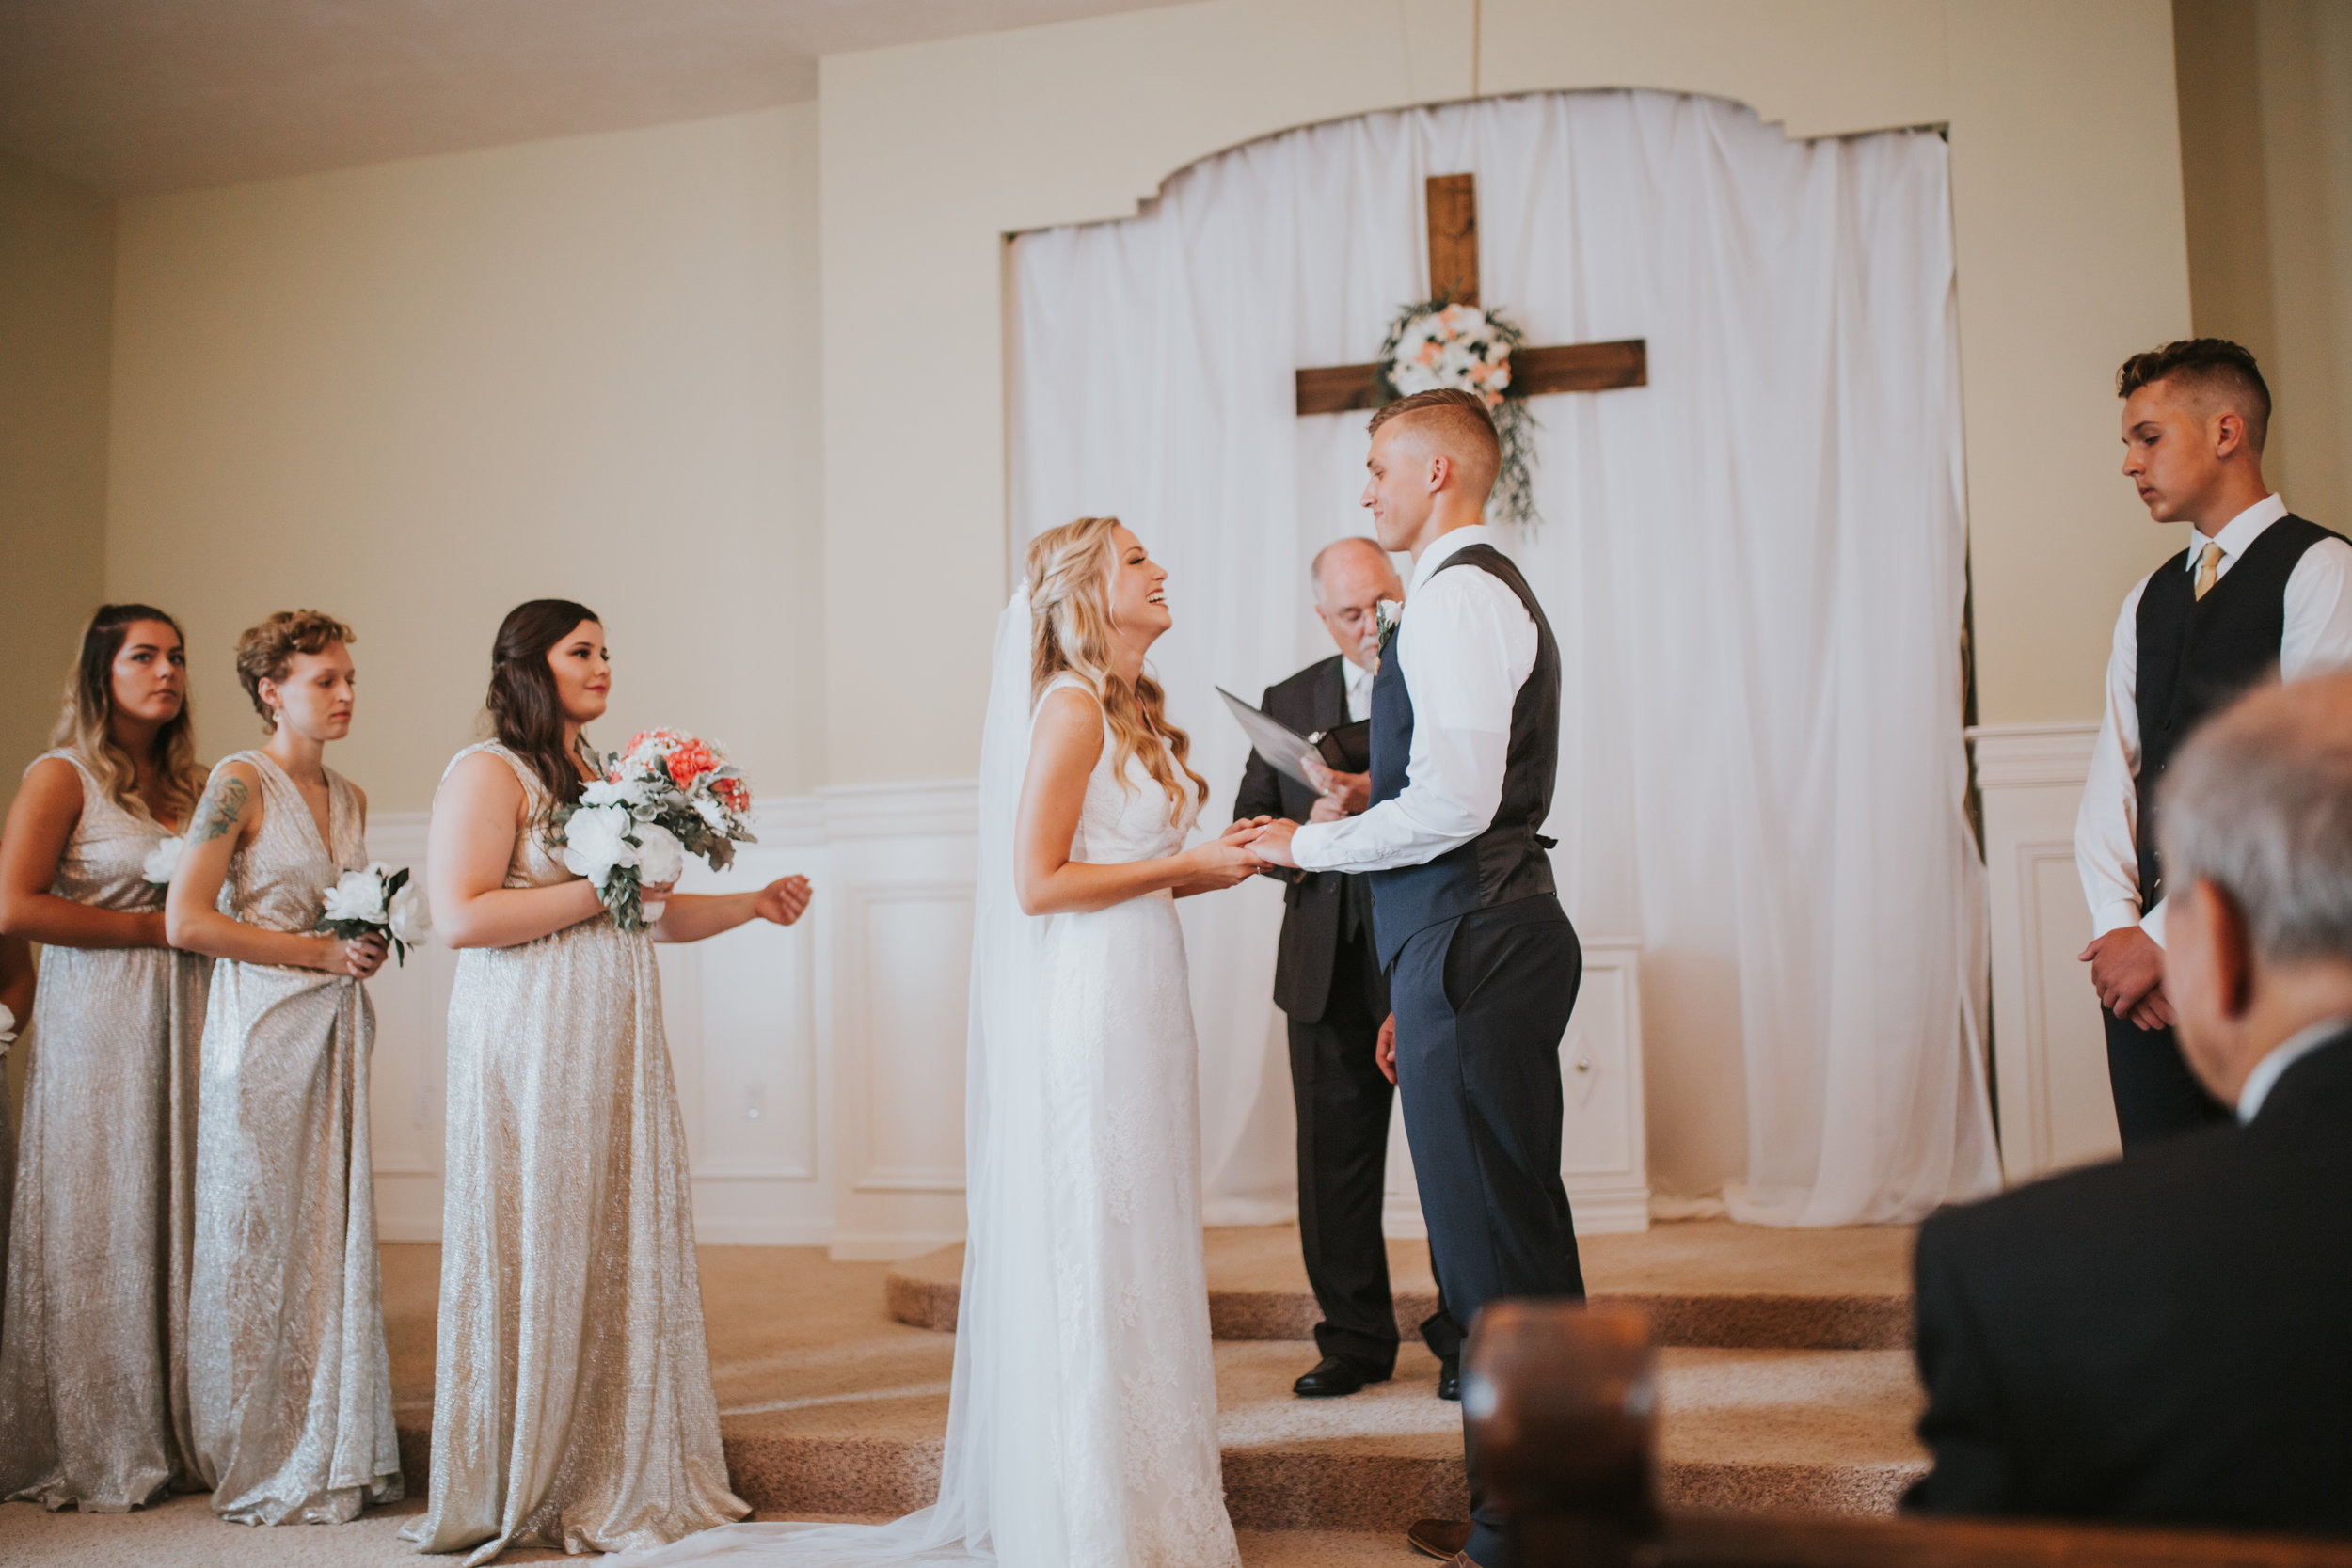 heritage-chapel-st-louis-wedding-photographer-41